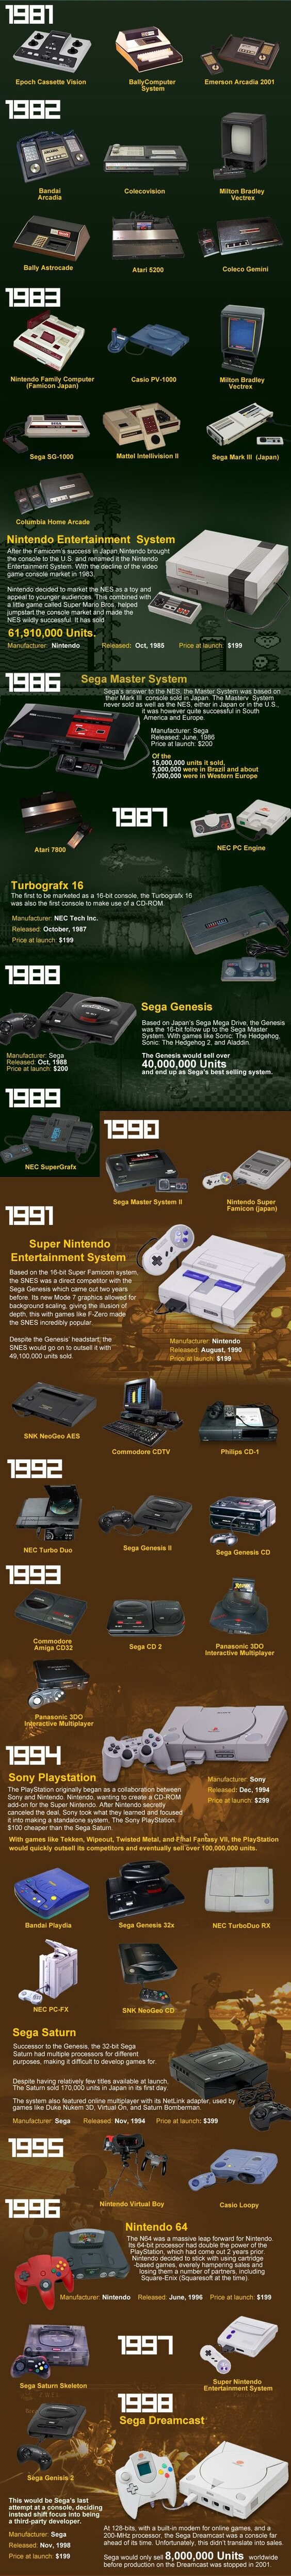 timeline history of video games 2